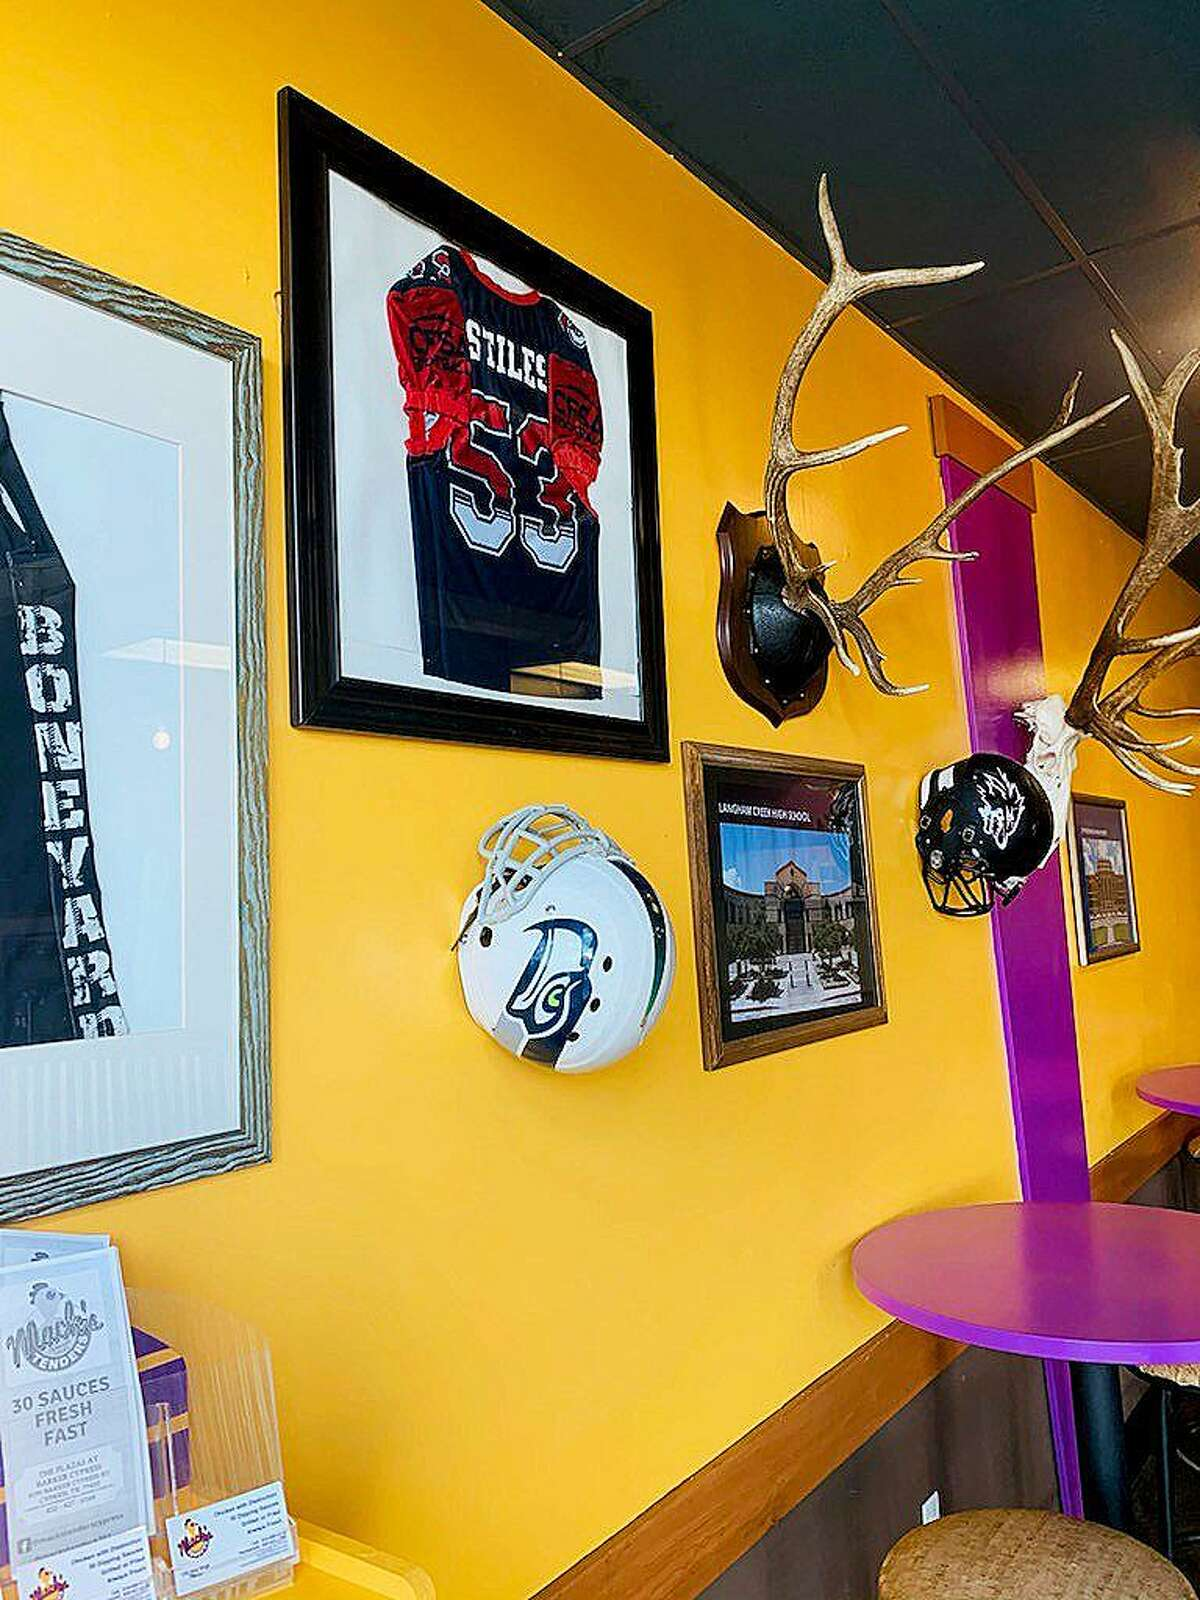 Wall art at Mack's Tenders in Cypress. The restaurant received a reprieve on Christmas Day in the form of a donation from Bar Stool Sports founder David Portnoy.